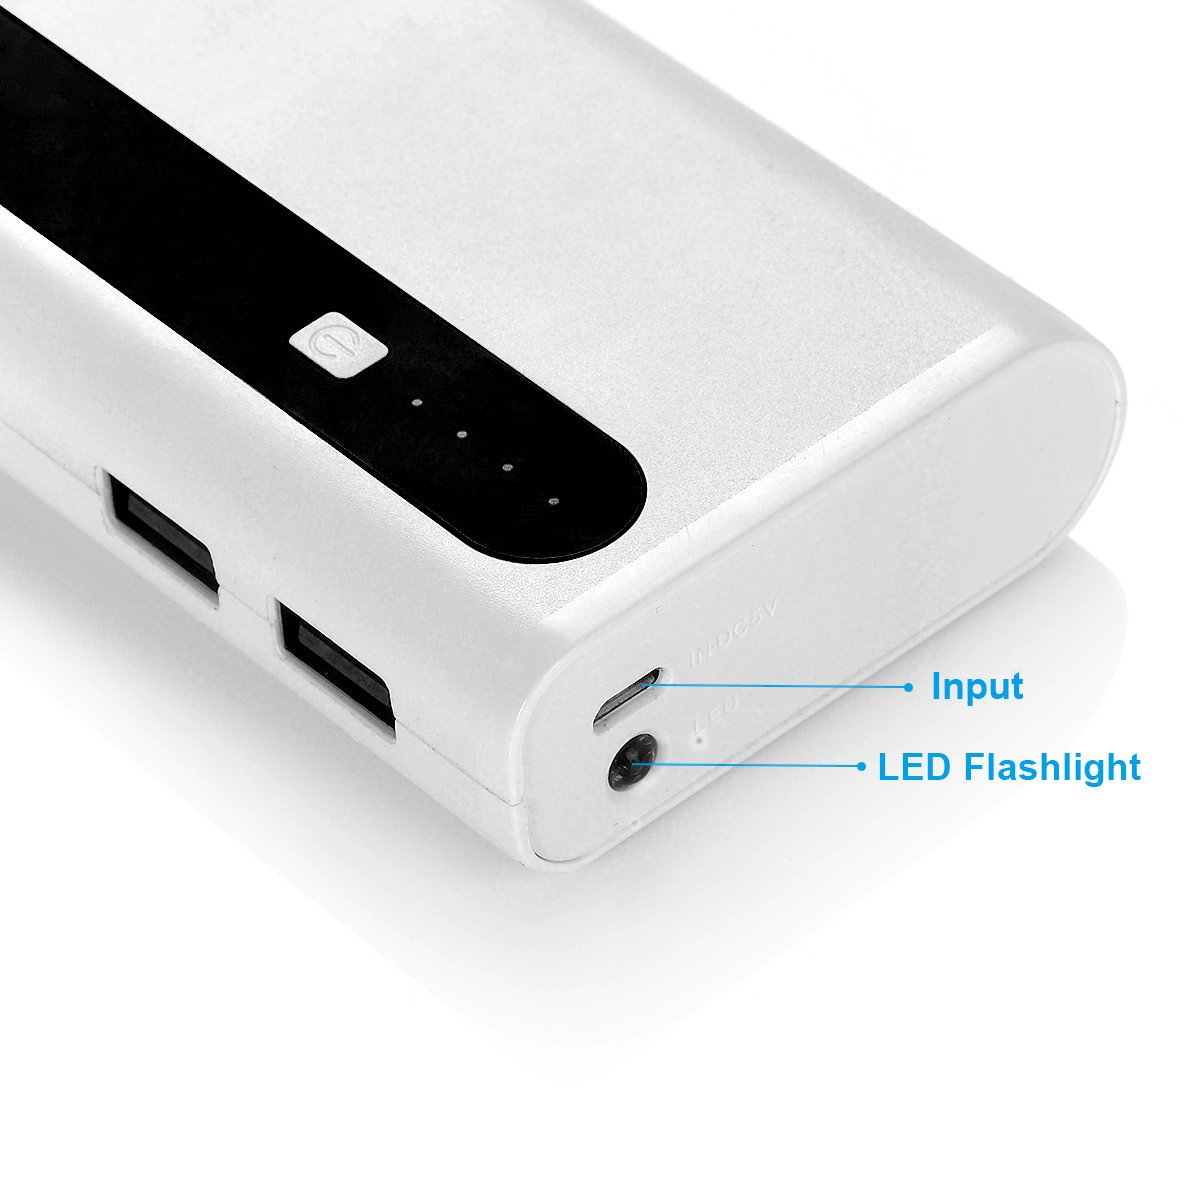 Aibocn Slim Power Bank 10000mAh, USB Portable Charger Compact 10000 Power Pack with Flashlight, Dual USB Ports External Battery Pack for Mobile Phones and Tablet